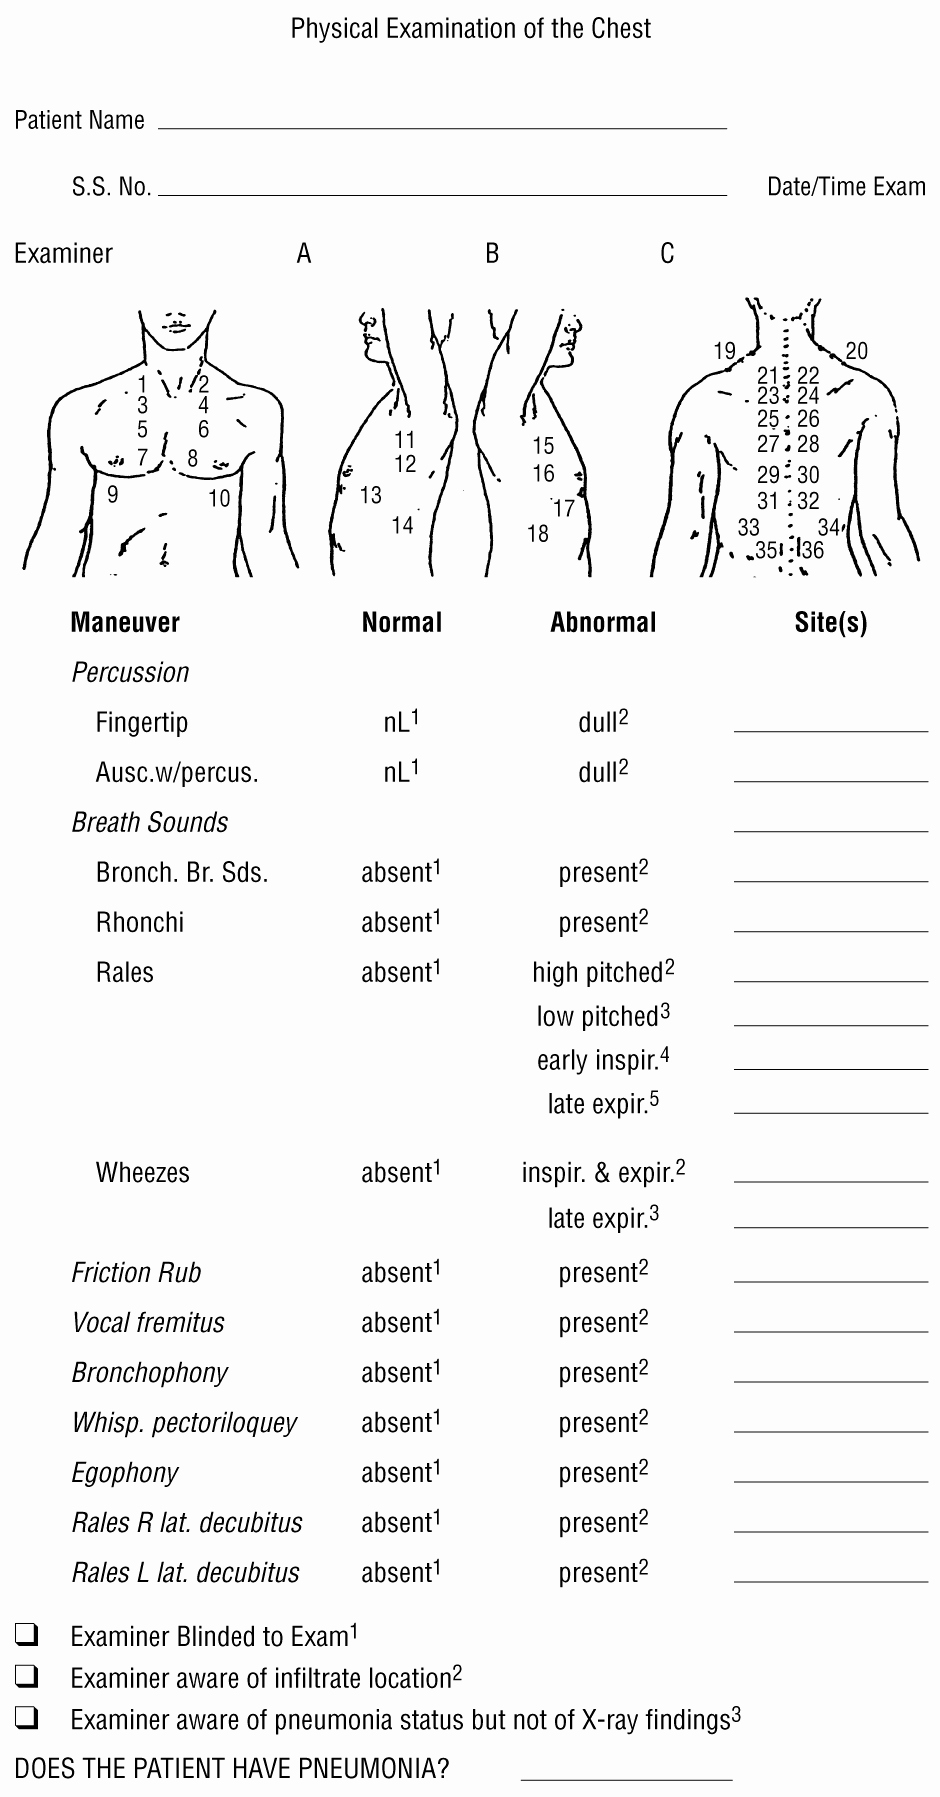 Physical Examination form Template Luxury Diagnosing Pneumonia by Physical Examination Relevant or